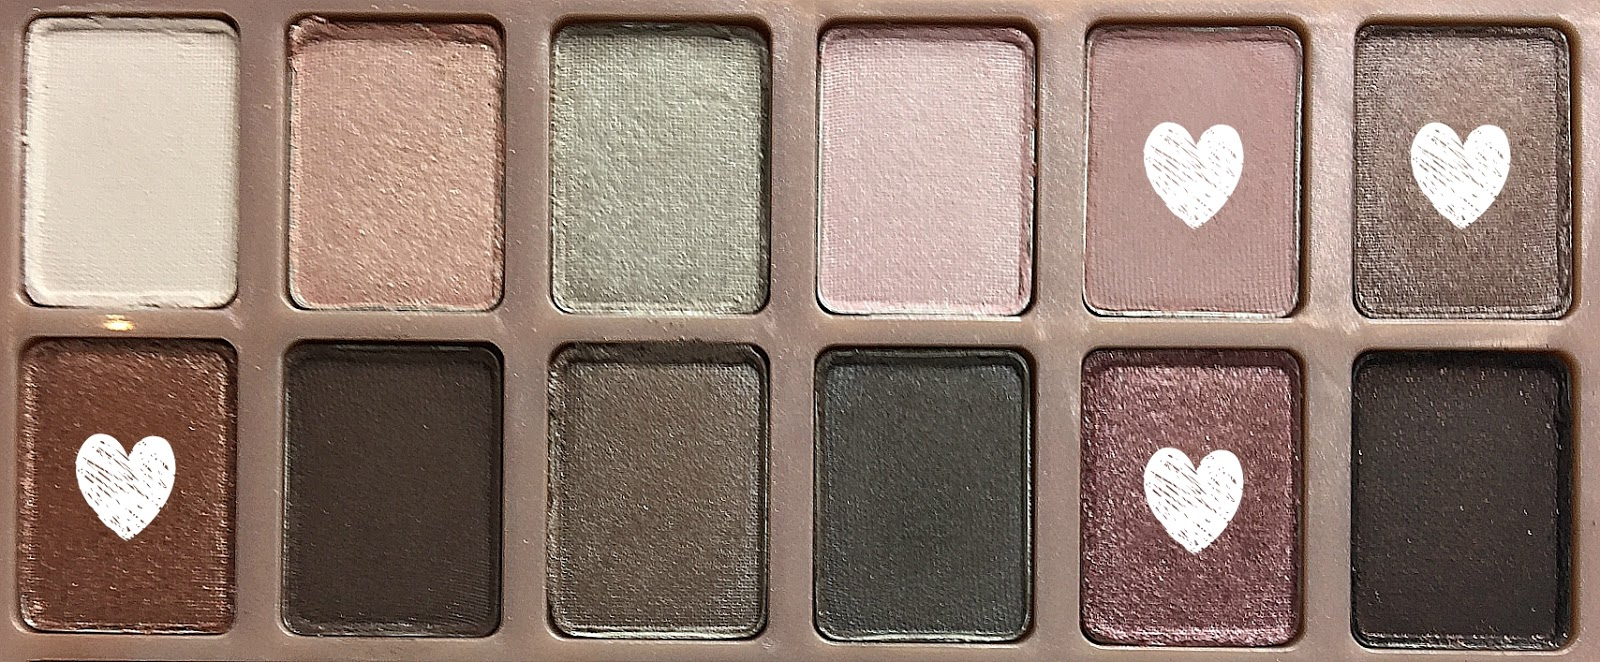 Review Maybelline The Blushed Nudes Eyeshadow Palette Plus Dry And